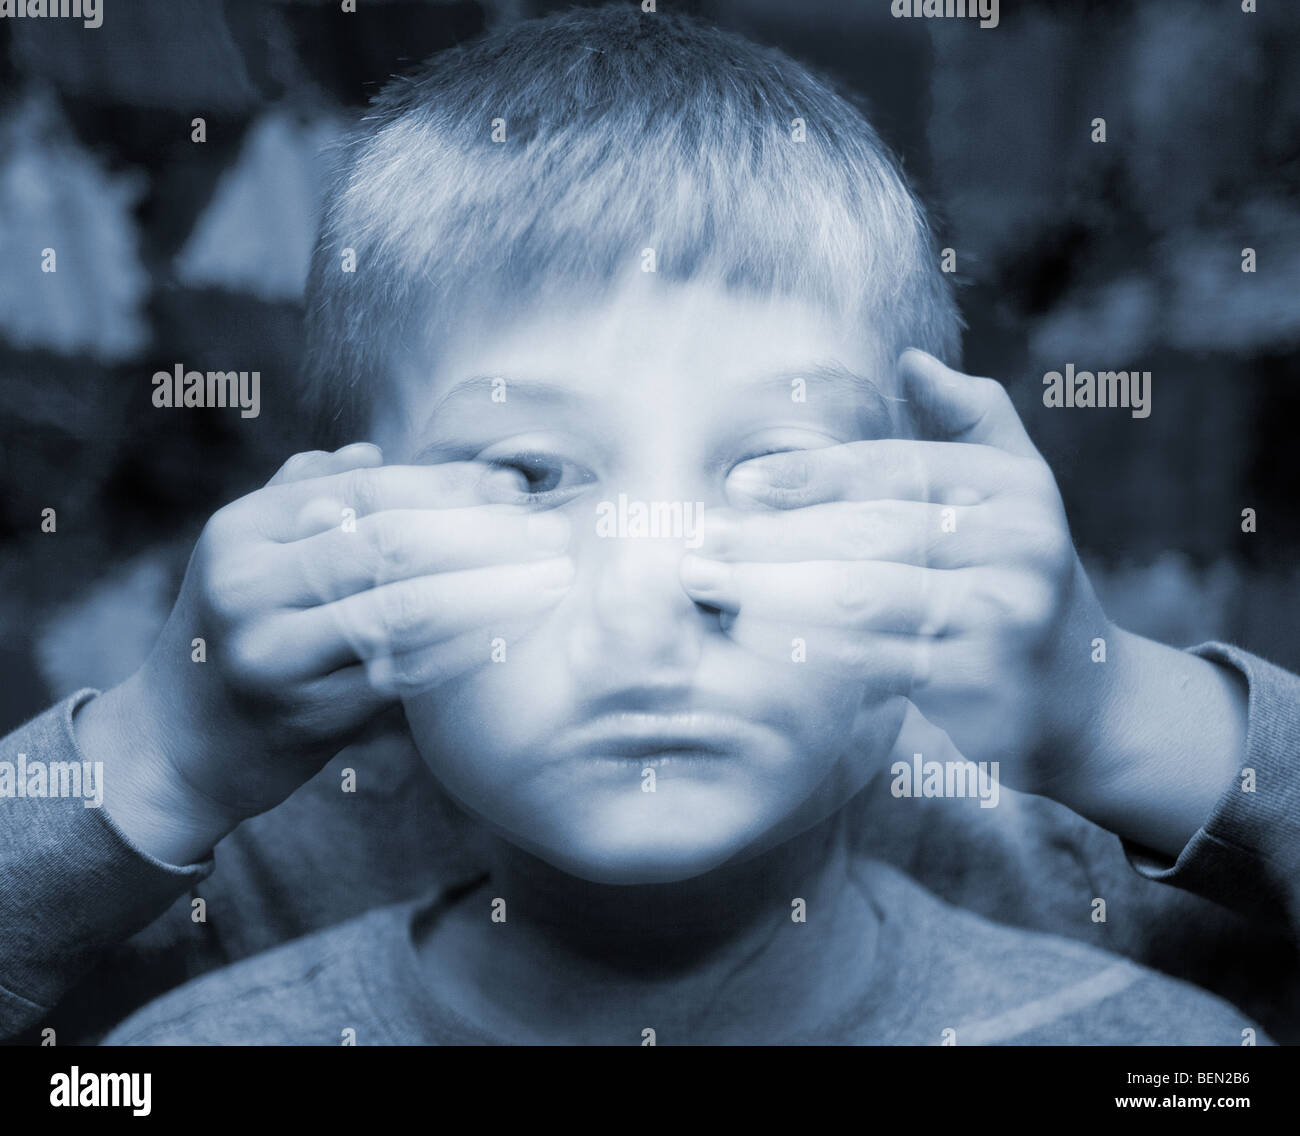 A small boy with eyes covered in an ethereal double exposure. Autism and blindness concepts - Stock Image